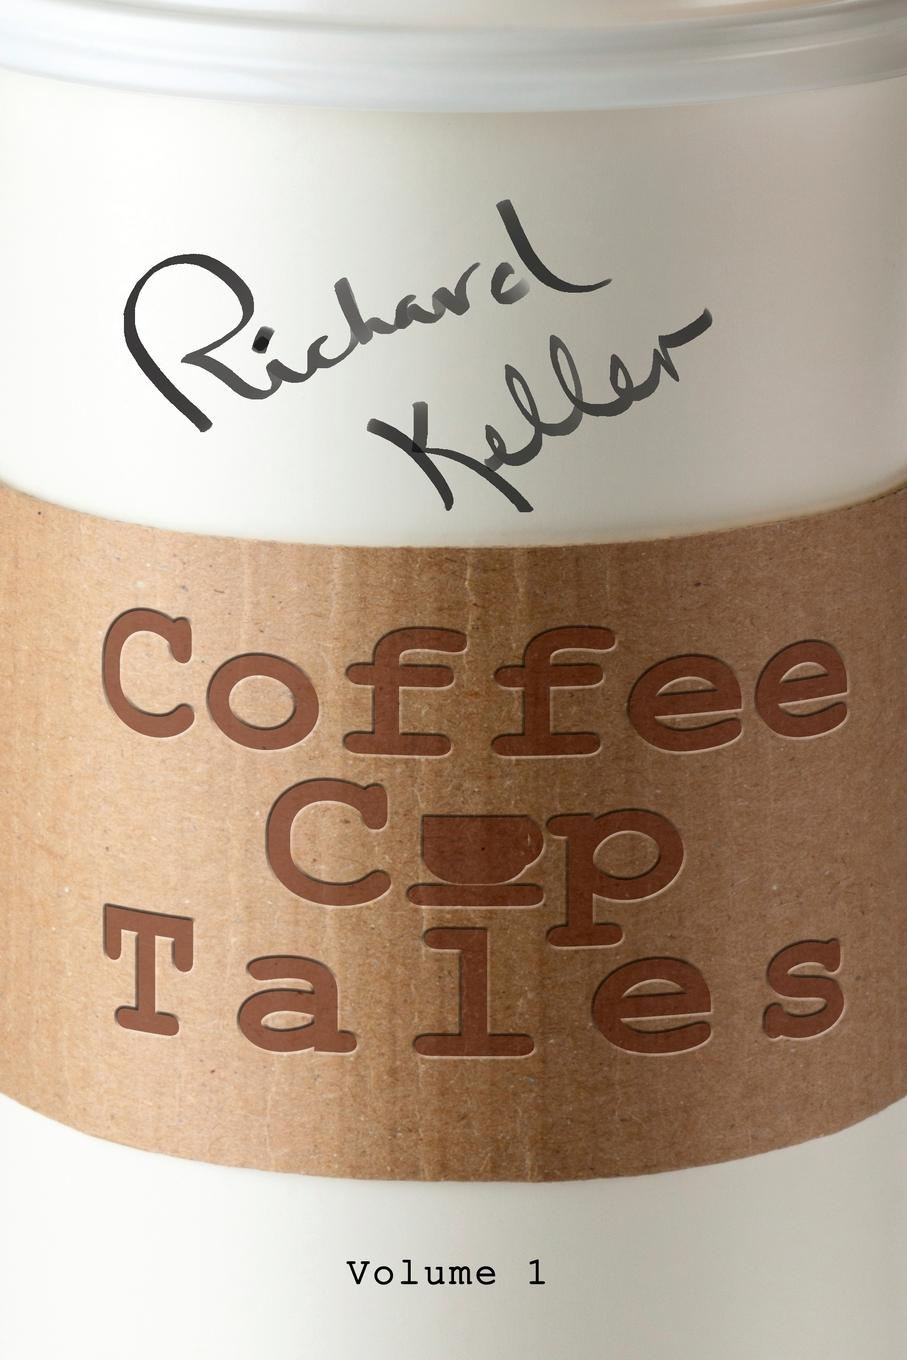 Richard Keller Coffee Cup Tales. stories inspired by overheard conversations at the coffee shop the story of coffee